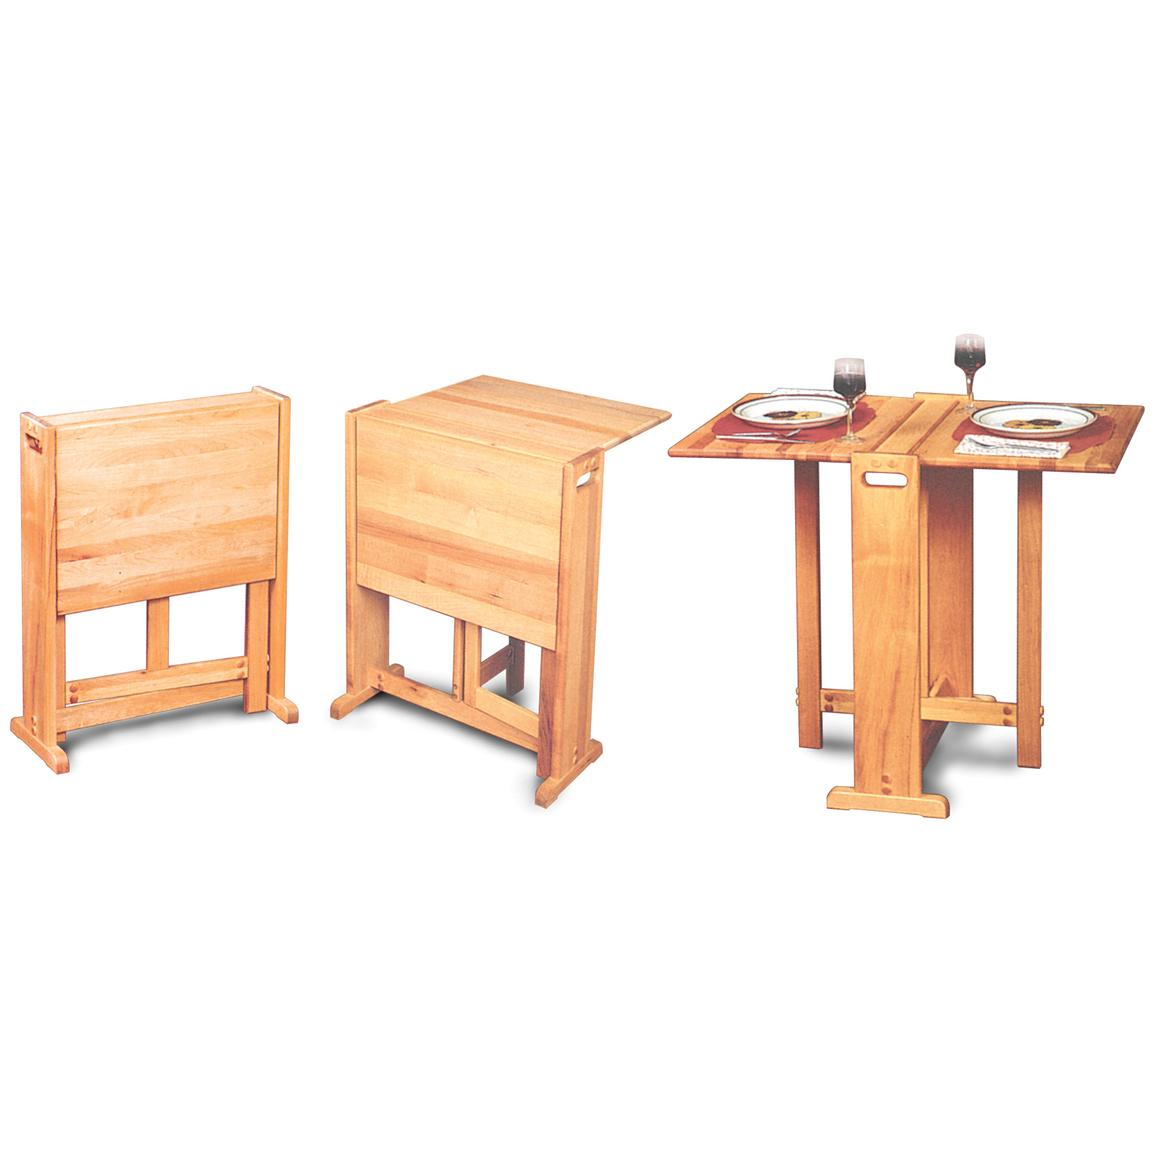 fold away single chair bed living accents folding adirondack clever dining table to save more space of small room | ideas 4 homes